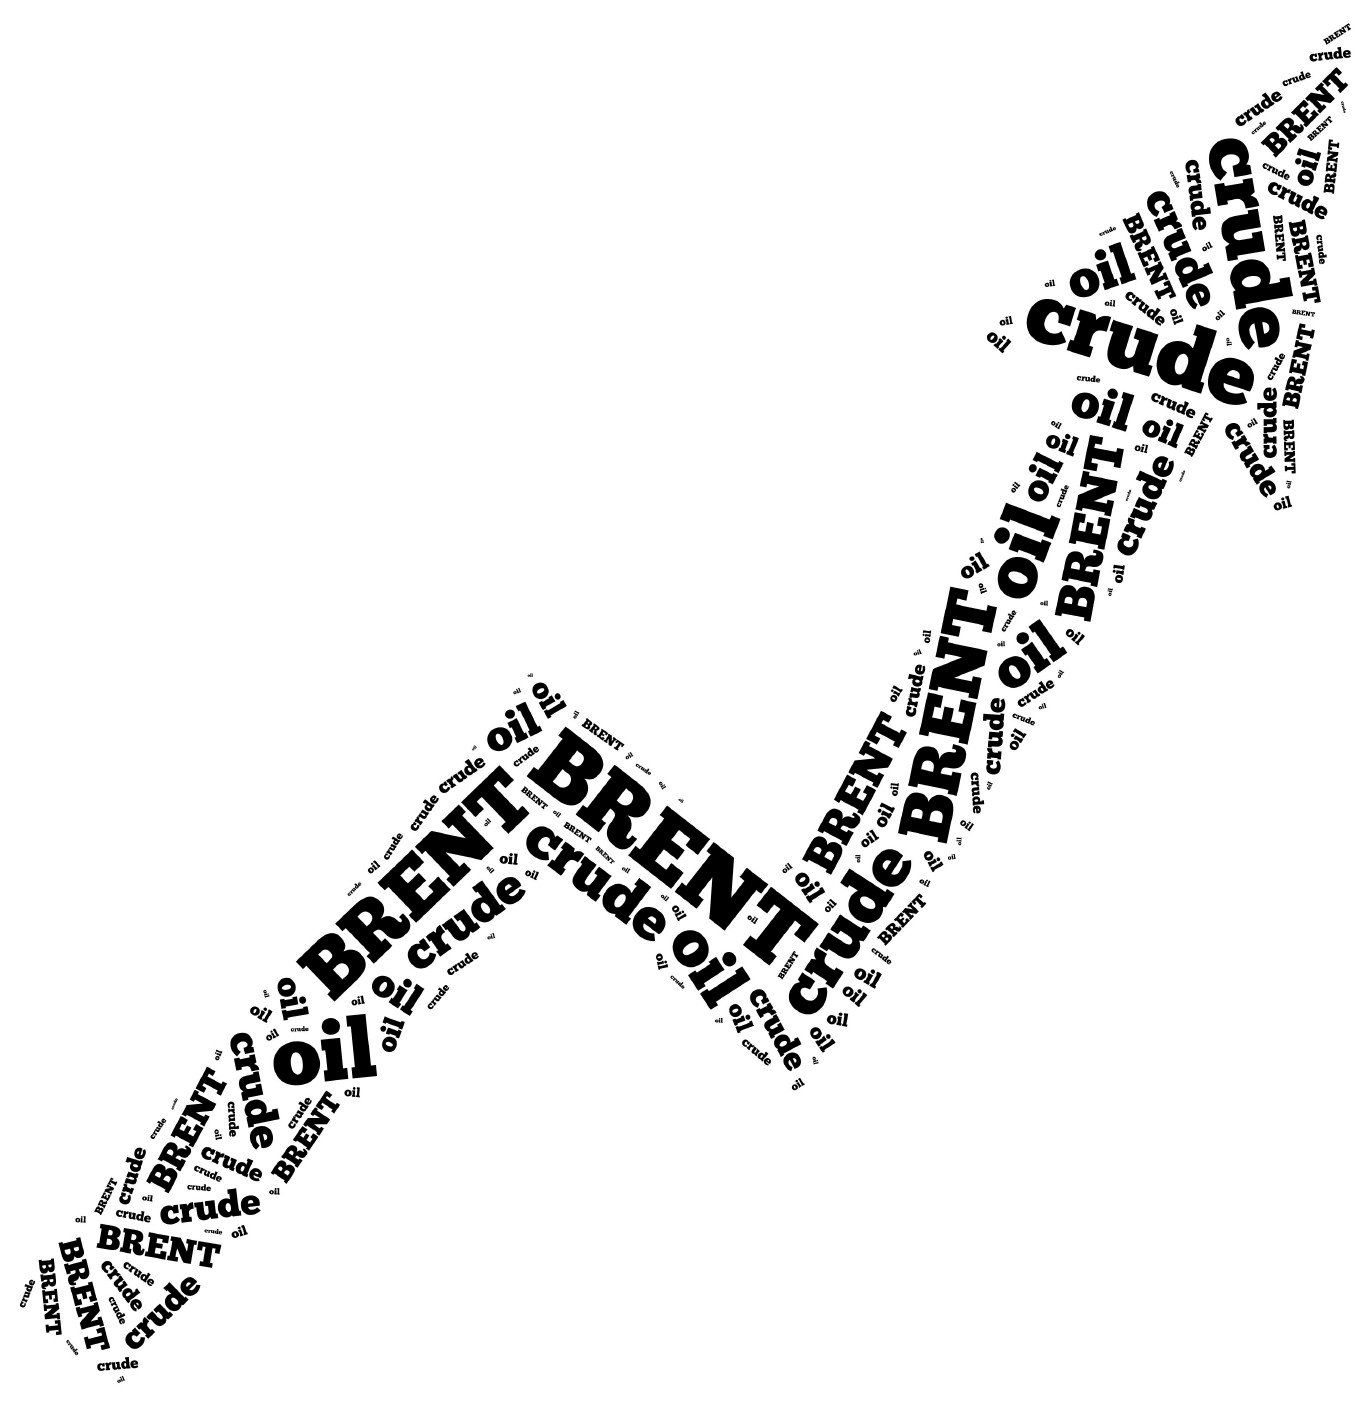 Brent crude oil commodity price growth. Word cloud illustration.